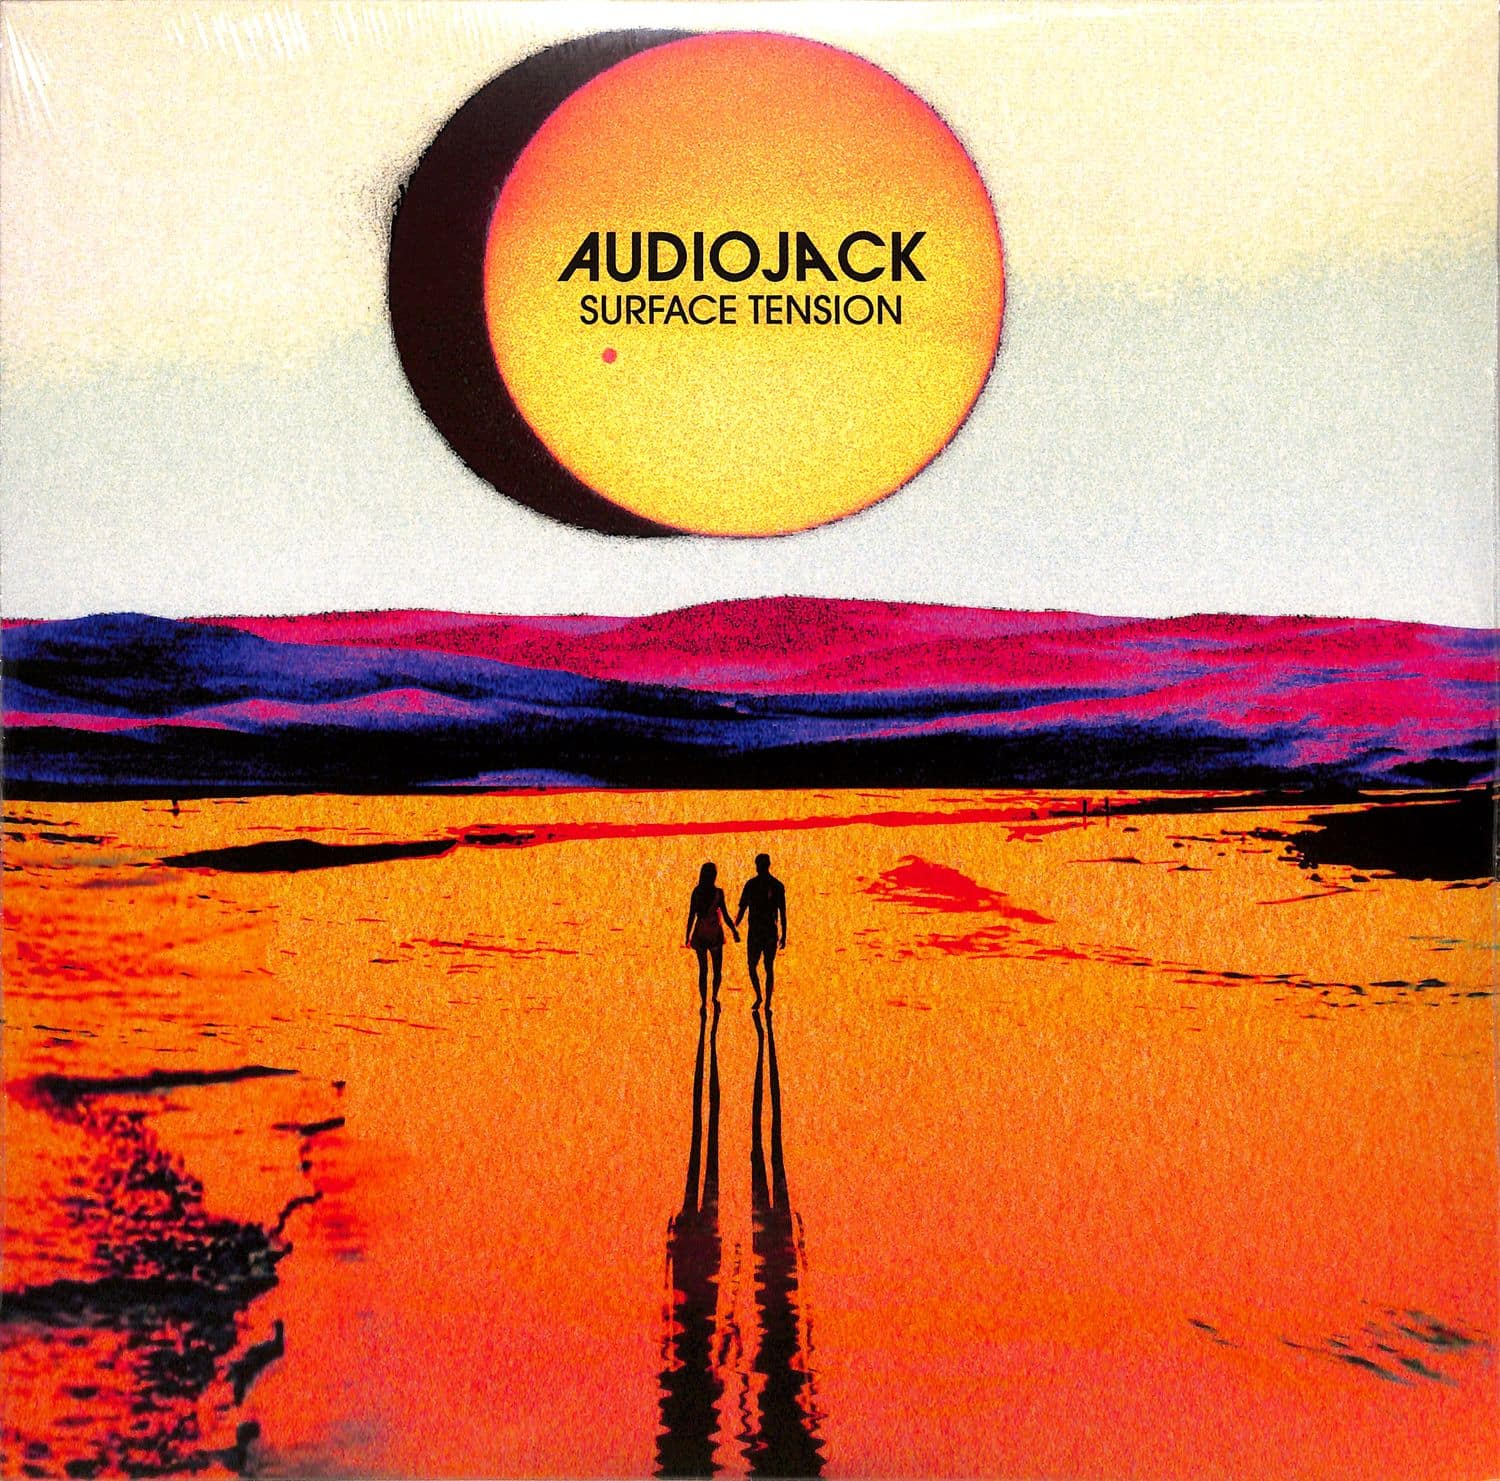 Audiojack - SURFACE TENSION